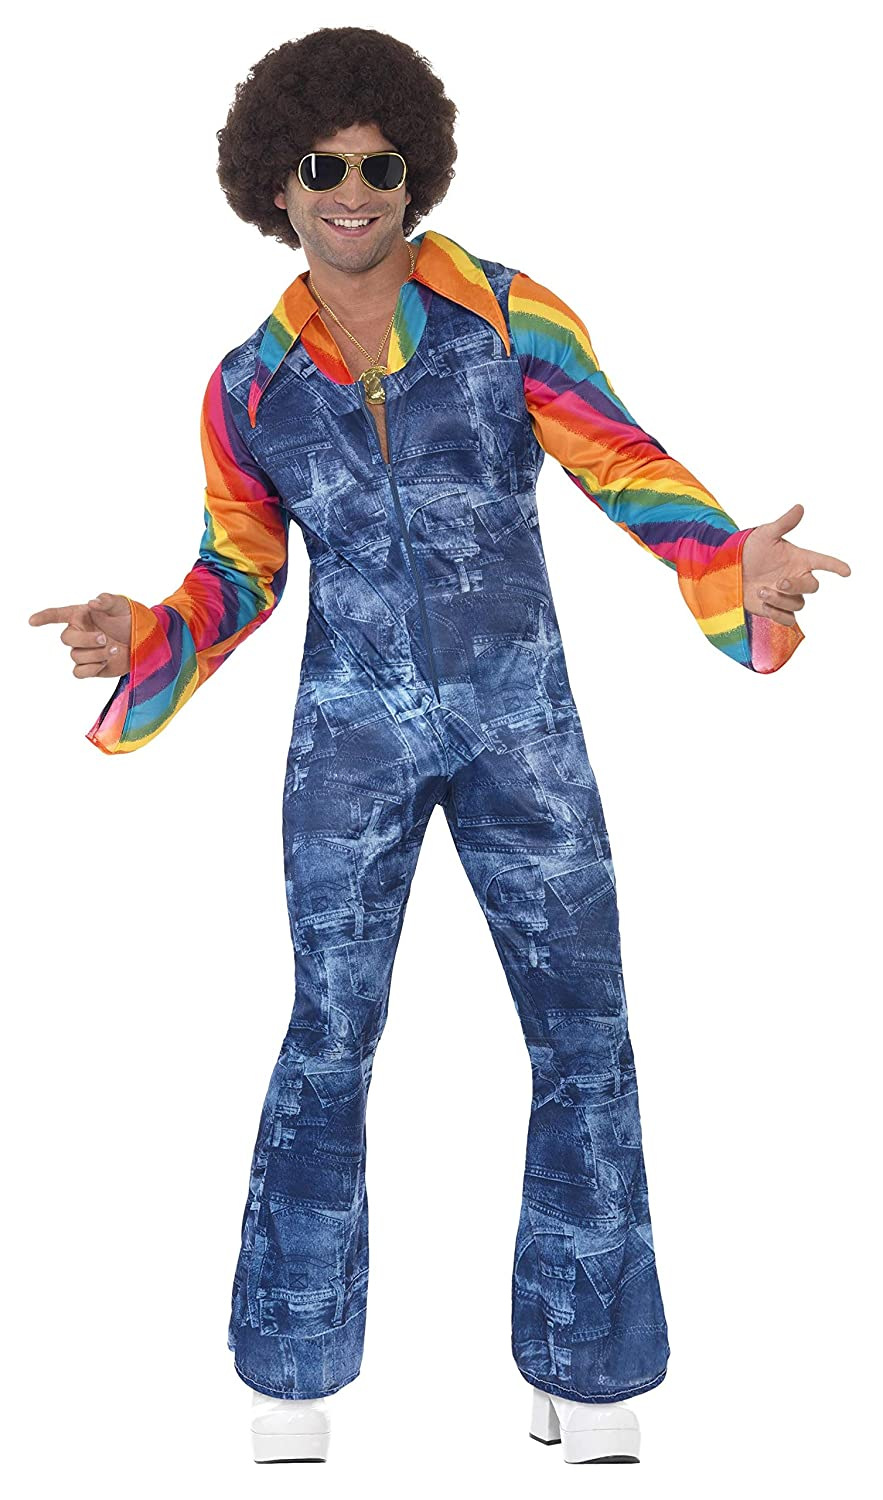 60s -70s  Men's Costumes : Hippie, Disco, Beatles Mens Groovier Dancer Costume Disco Outfit $72.40 AT vintagedancer.com